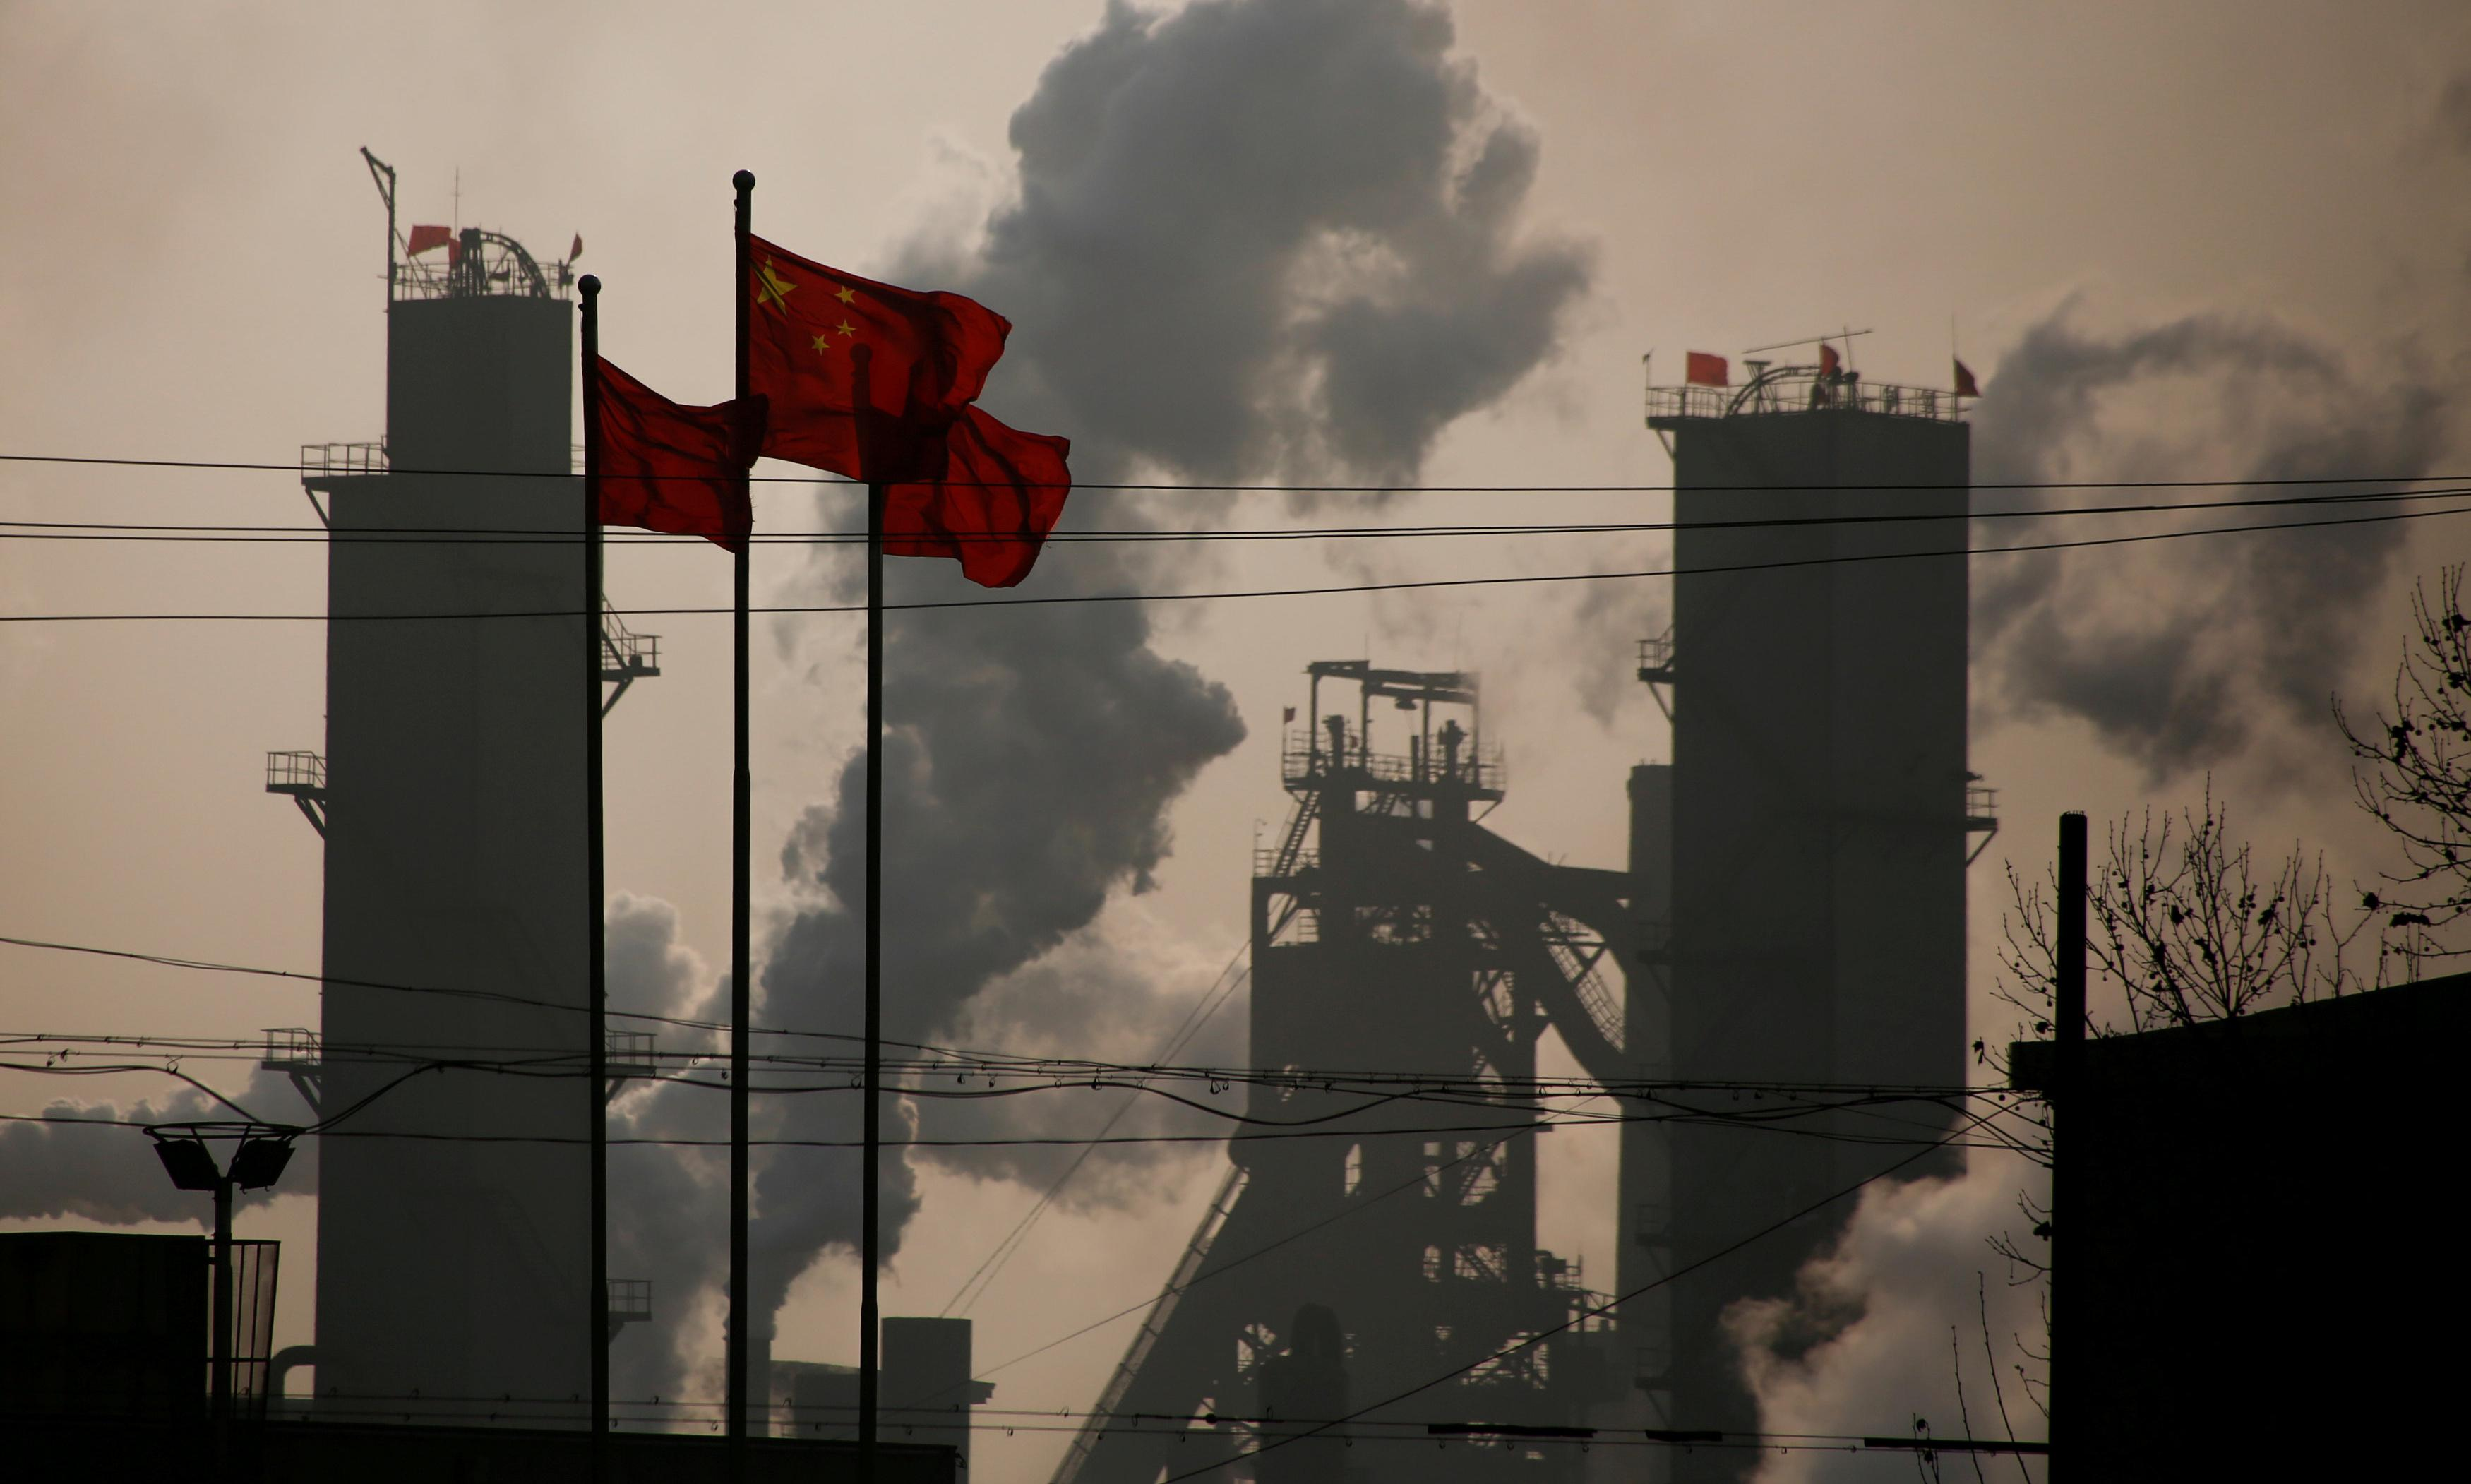 China factories releasing thousands of tonnes of illegal CFC gases, study finds